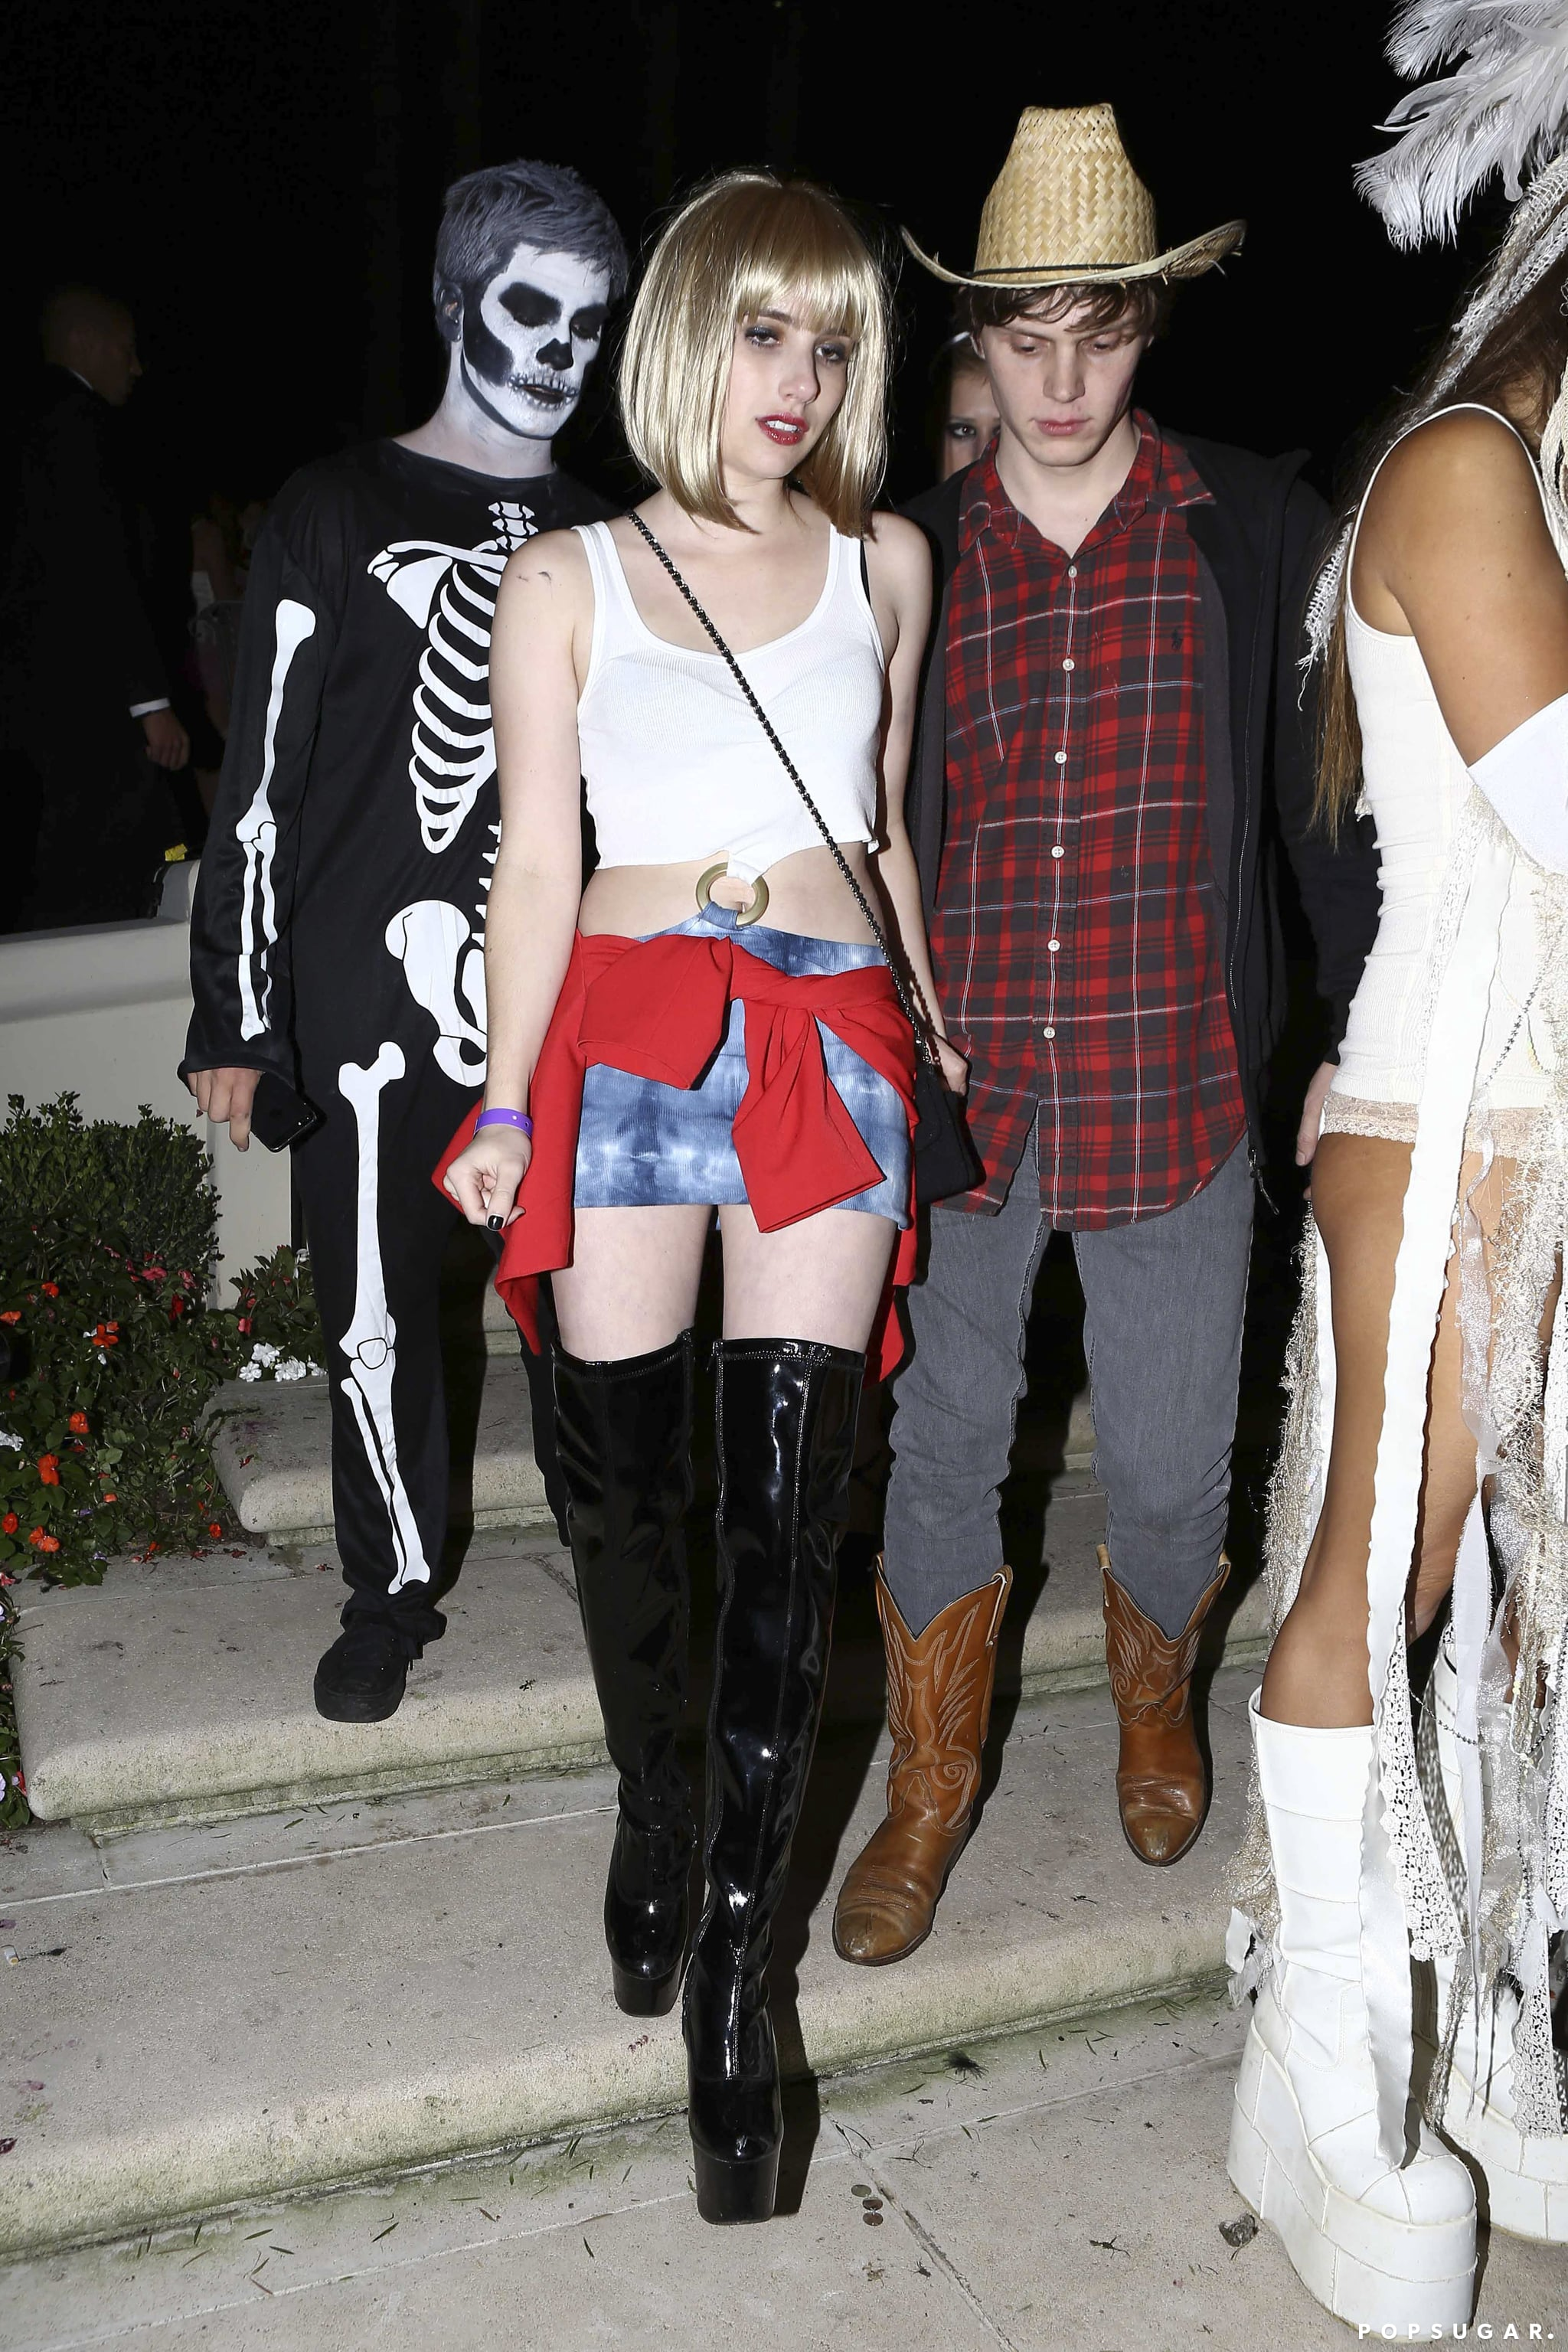 Emma Roberts As Vivian Ward 17 Years Of Supersexy Celebrity Halloween Costumes Popsugar Celebrity Photo 14